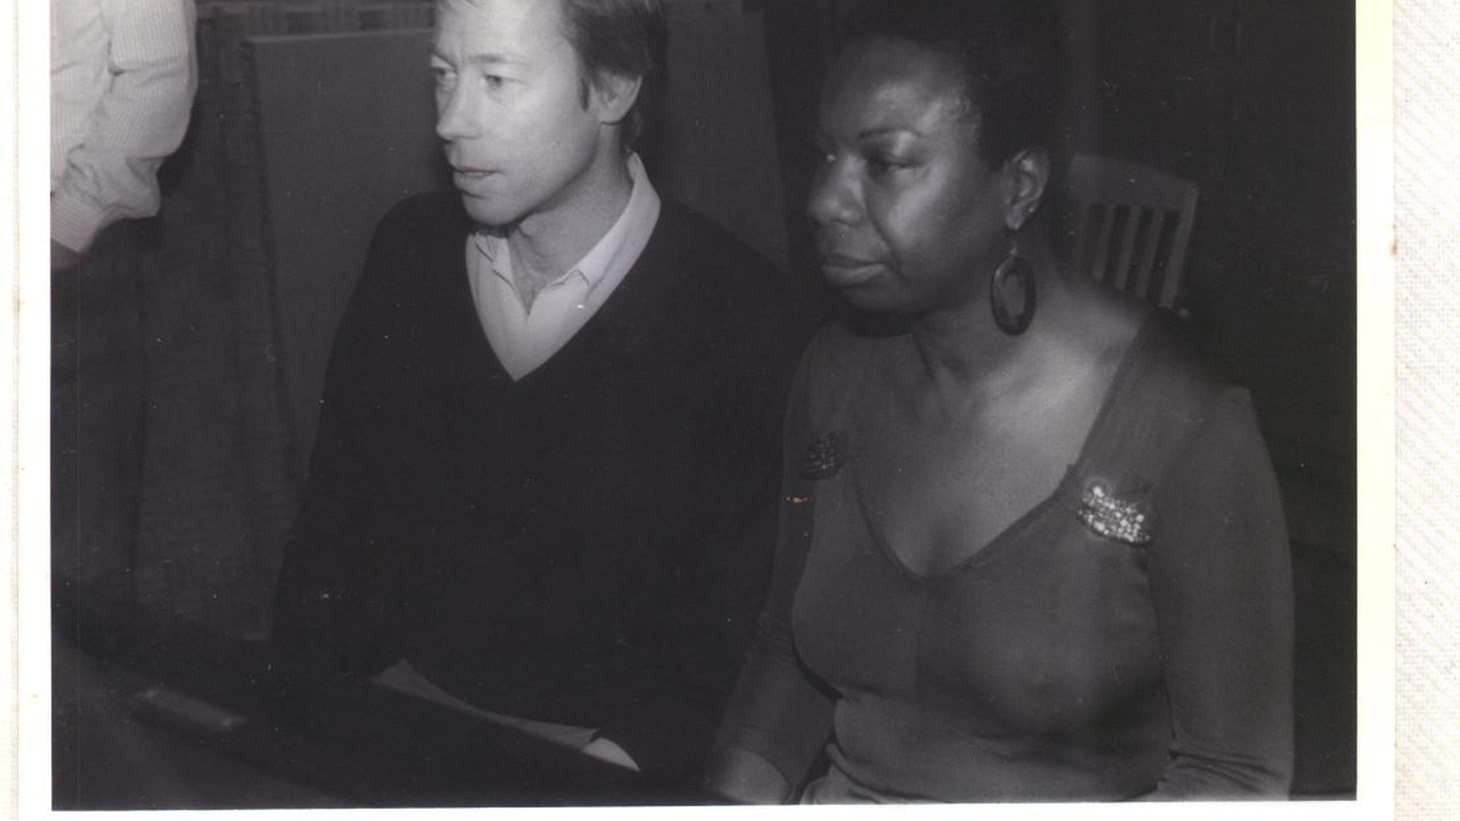 Tom Schnabel pays a special tribute to pianist, composer, and civil rights activist Nina Simone.